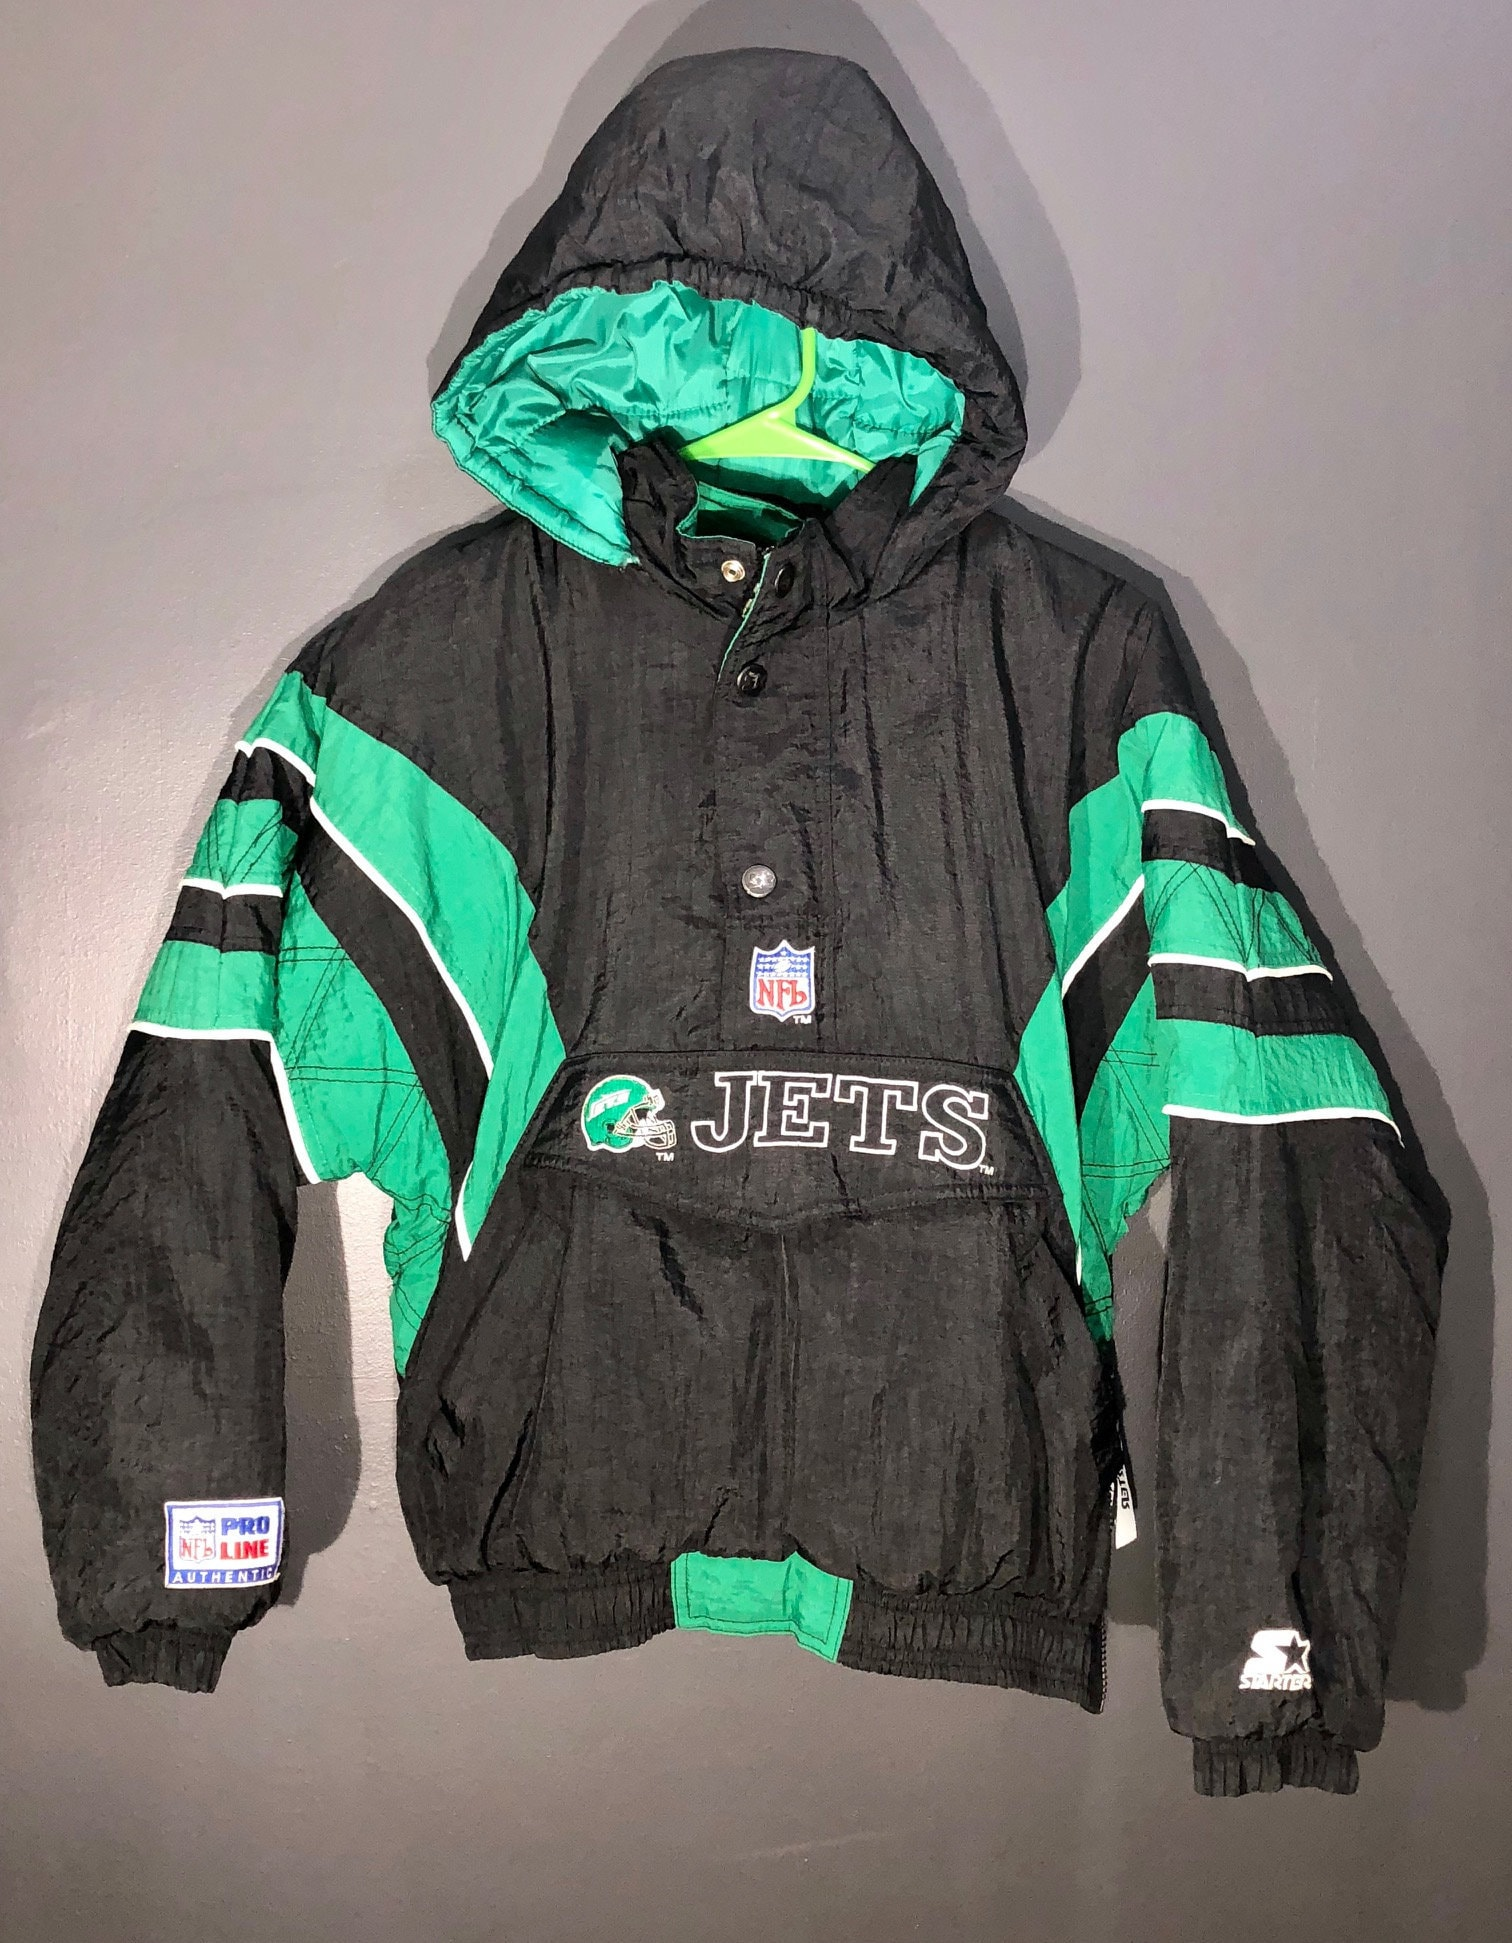 dee4d4f7 Vintage 90s New York Jets Starter pullover jacket NFL Football Pro Line  Official throwback size YOUTH large